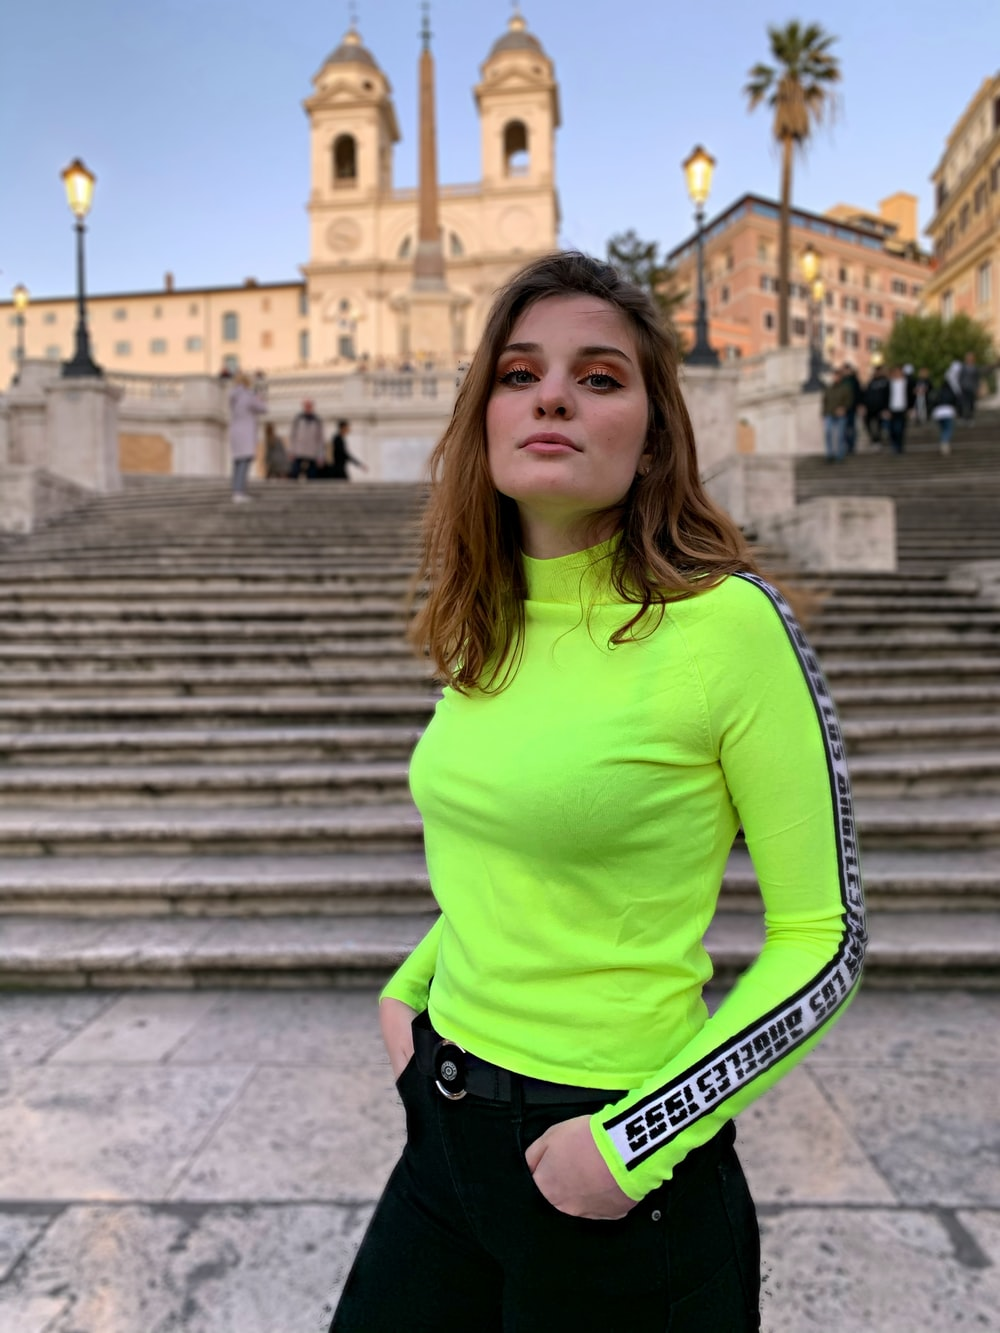 woman in green long sleeve shirt and black pants standing on stairs